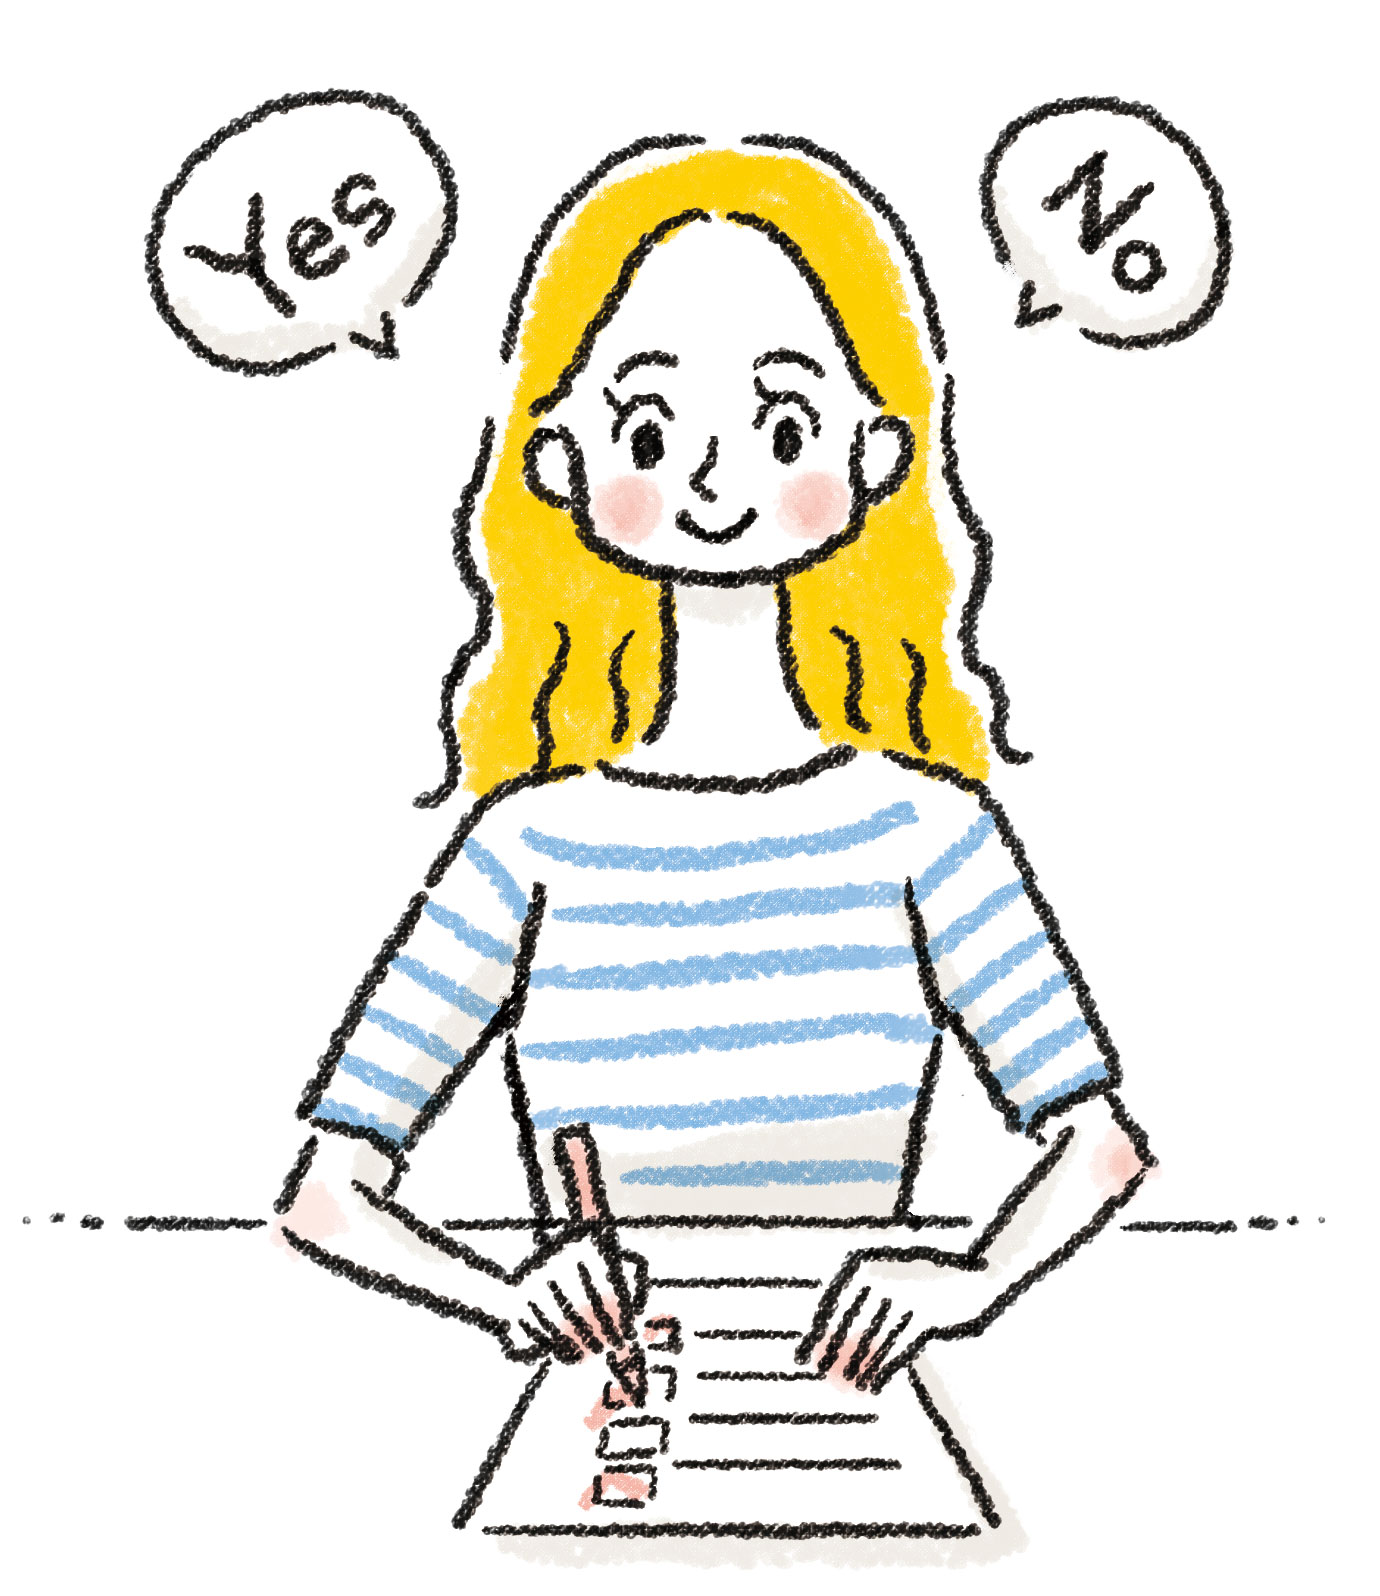 YES or NOの疑問点を用紙に書き出す女性のイラスト・カット